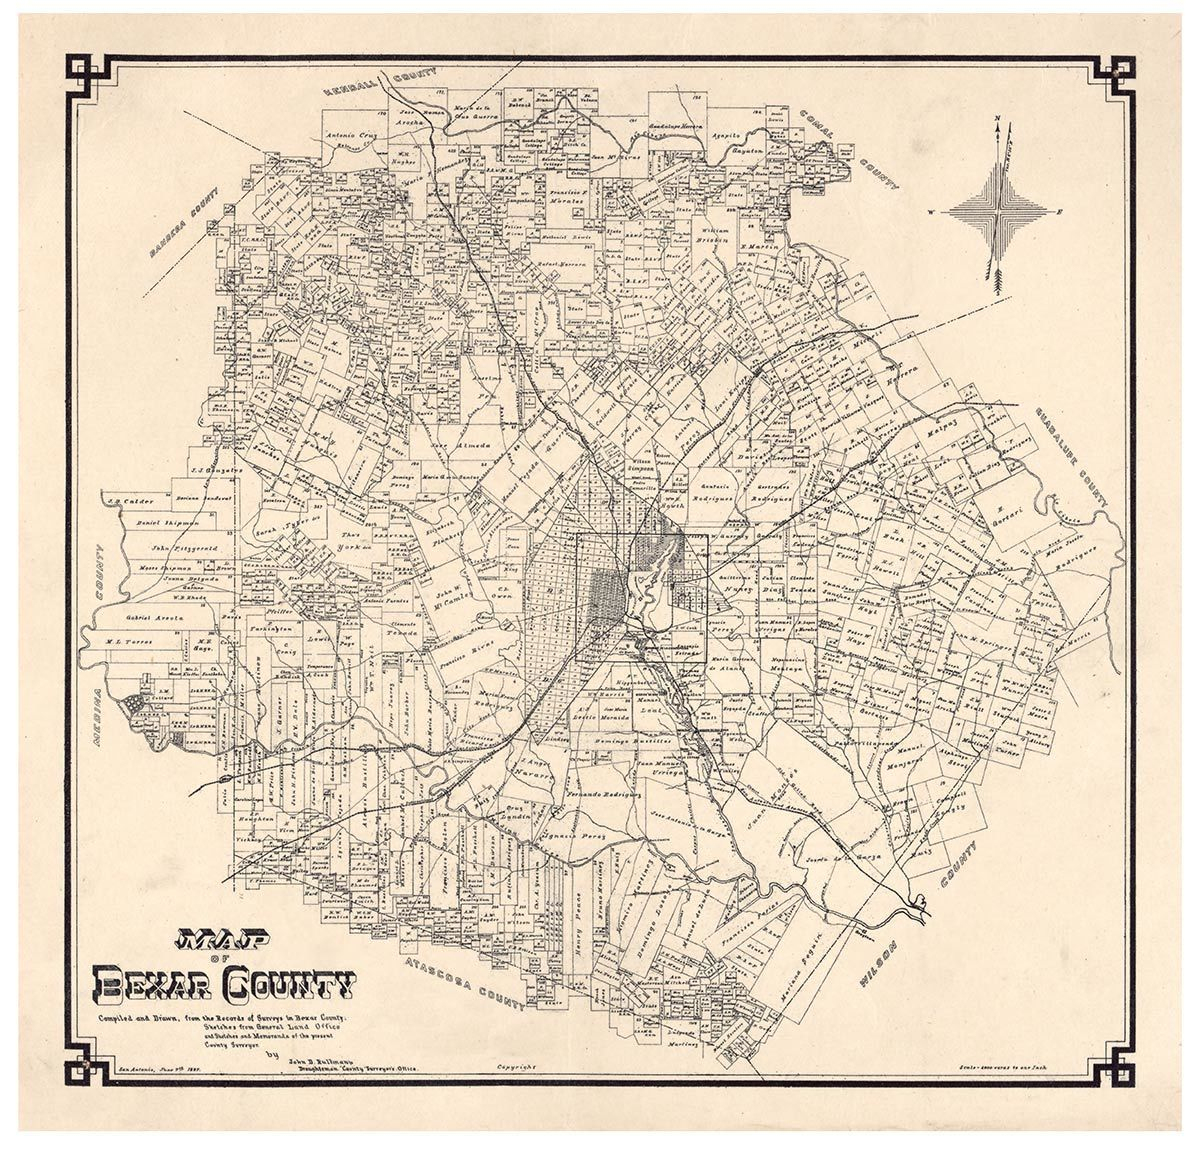 Bexar County Texas 1887A - Old Map Reprint - Old Maps | Texas County - Texas County Wall Map